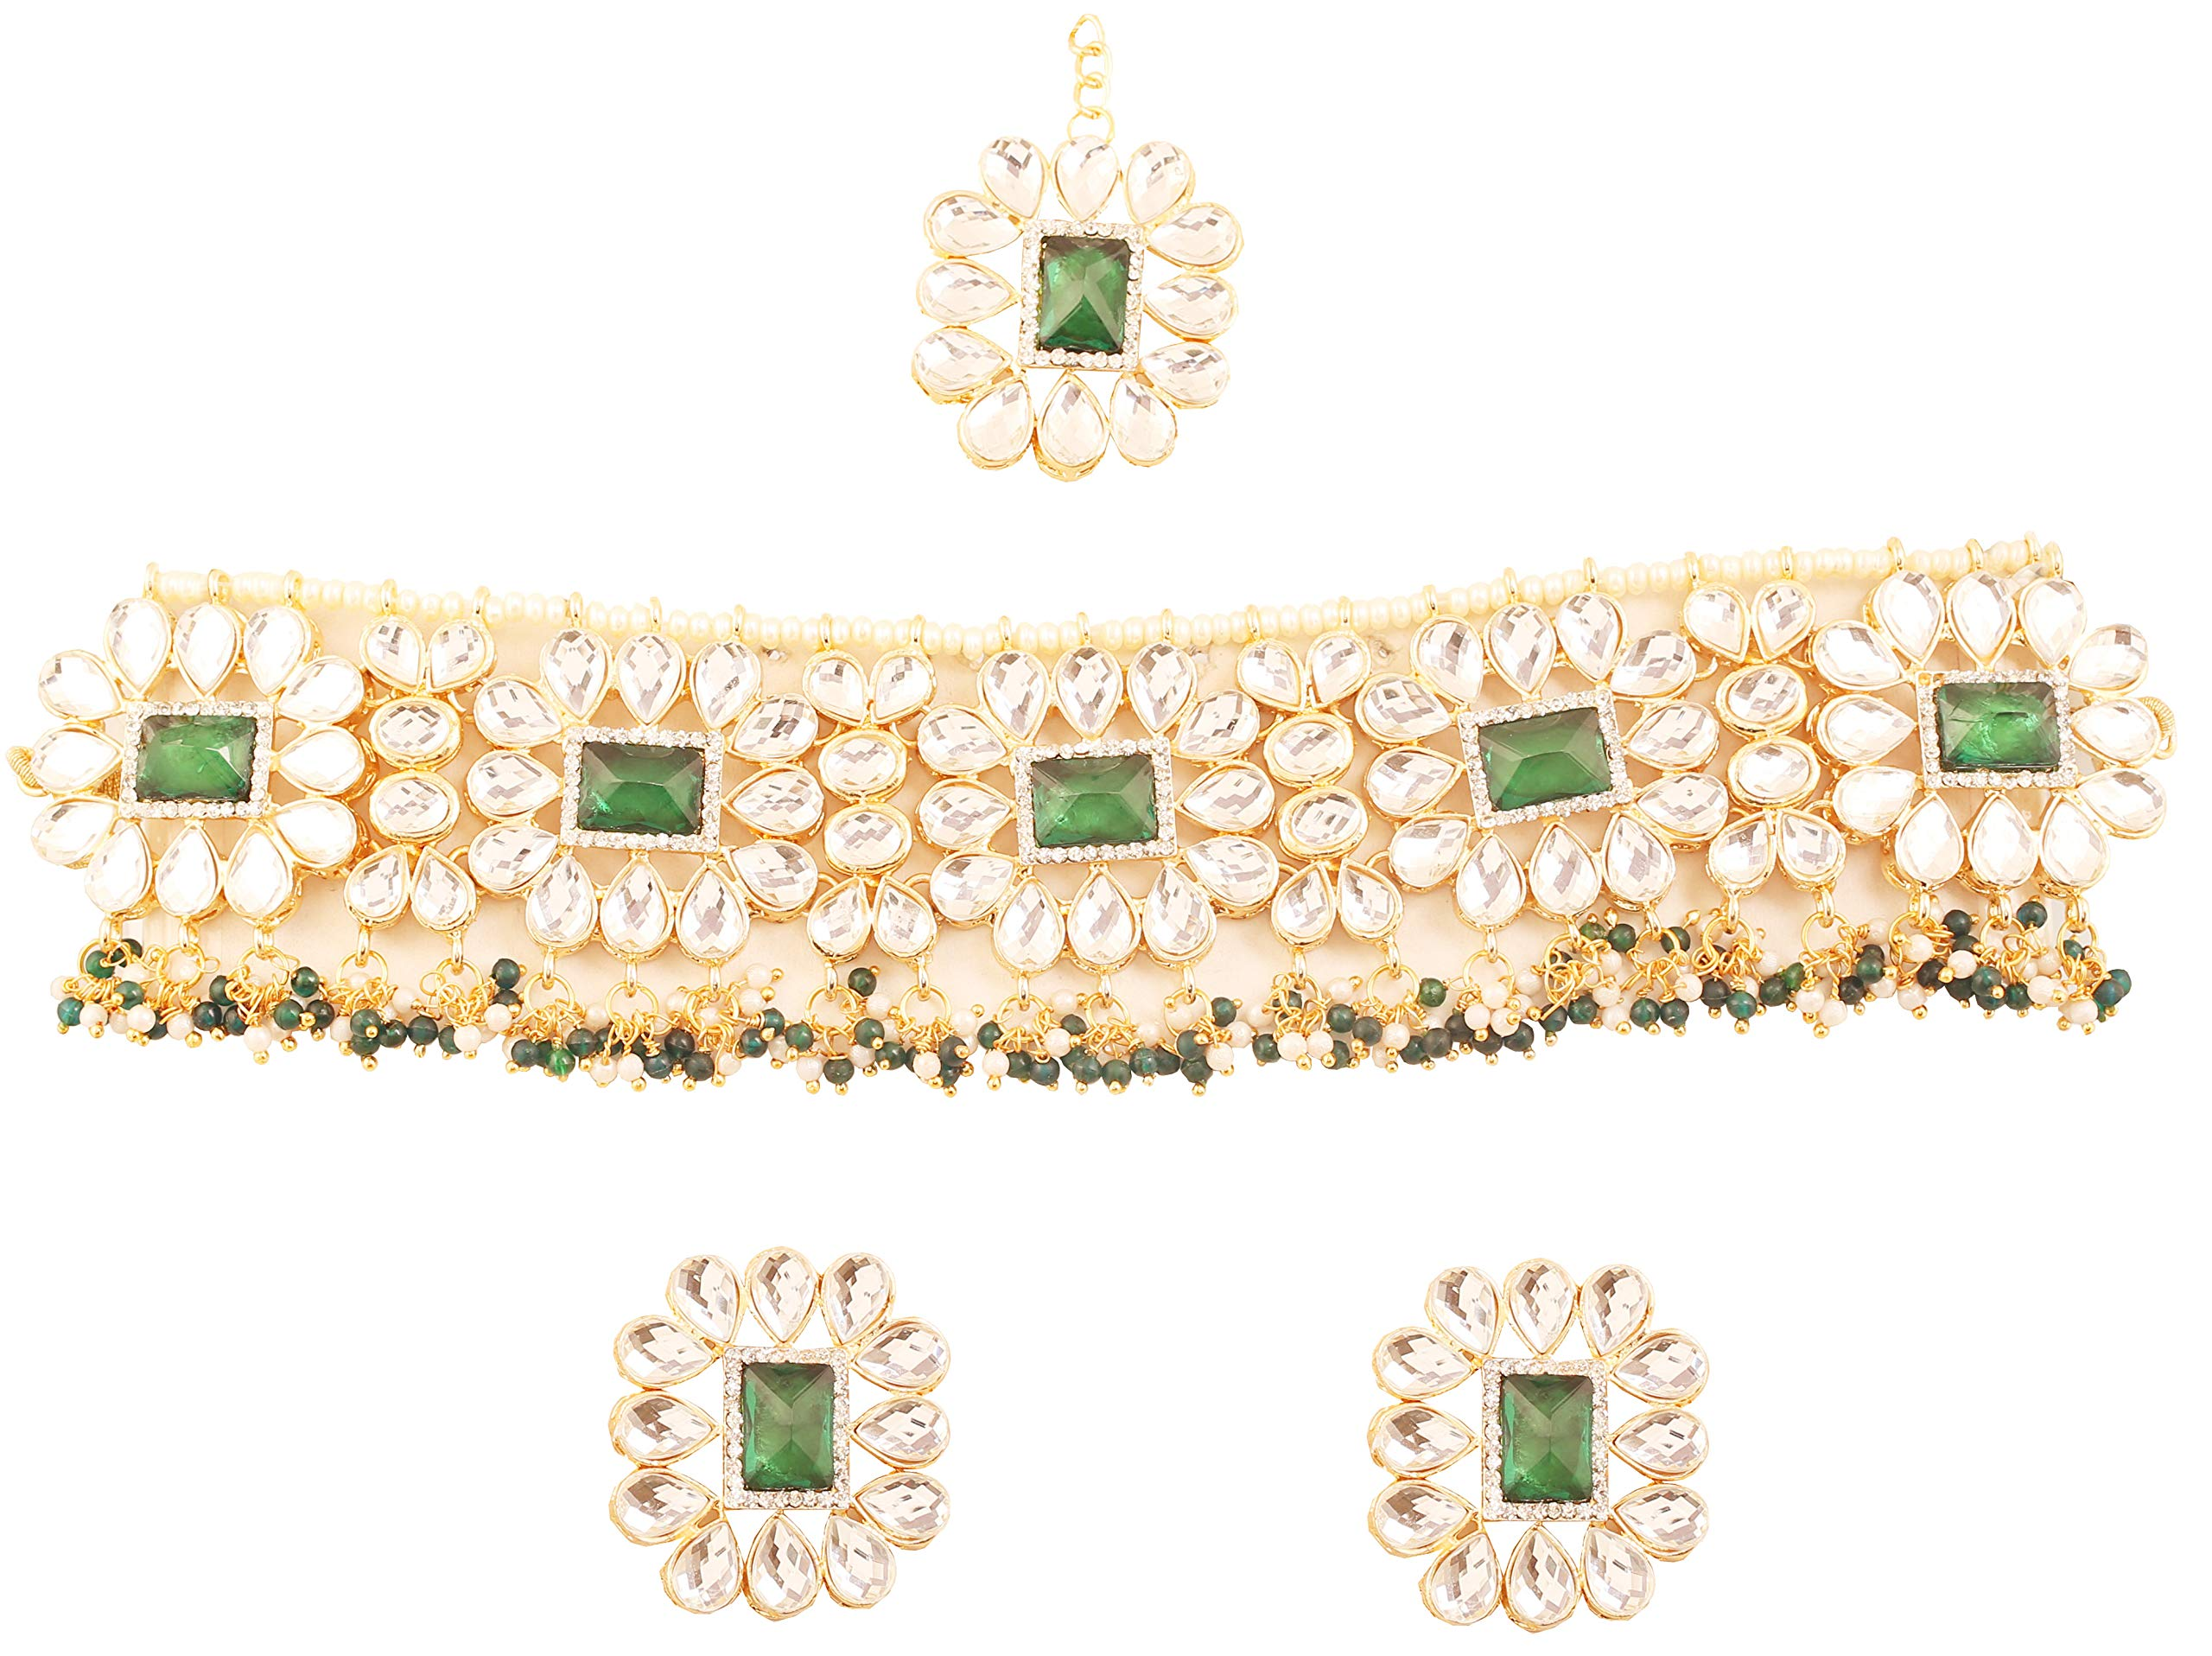 New! Touchstone Contemporary Kundan Collection Indian Bollywood Desire Mughal Dramatic Kundan Look Natural Faux Emerald Pearls Jewelry Choker in Antique Gold Tone for Women